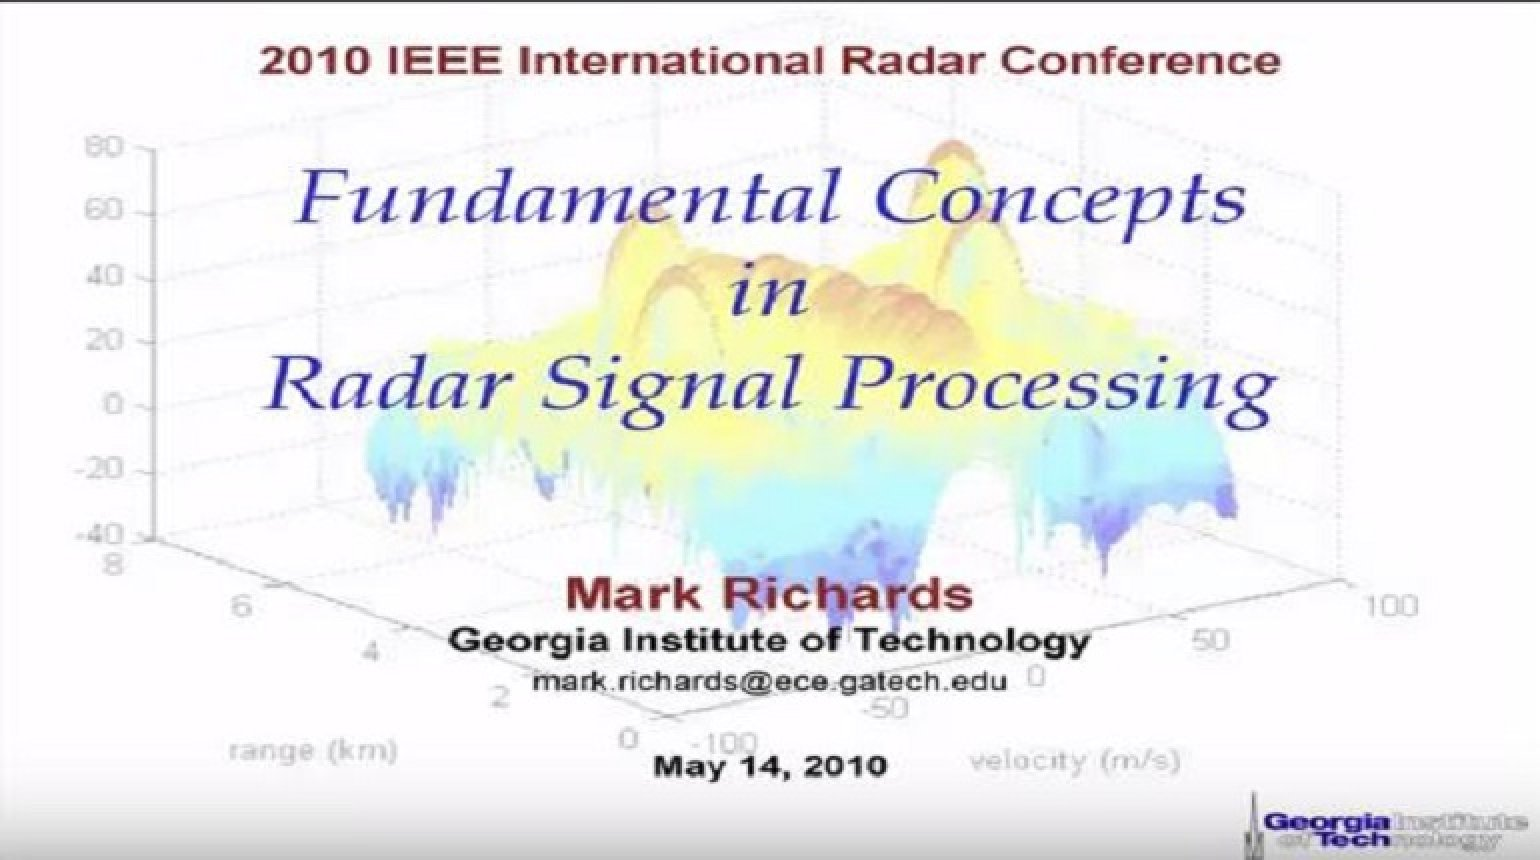 Fundamental Concepts in Radar Signal Processing - Introduction